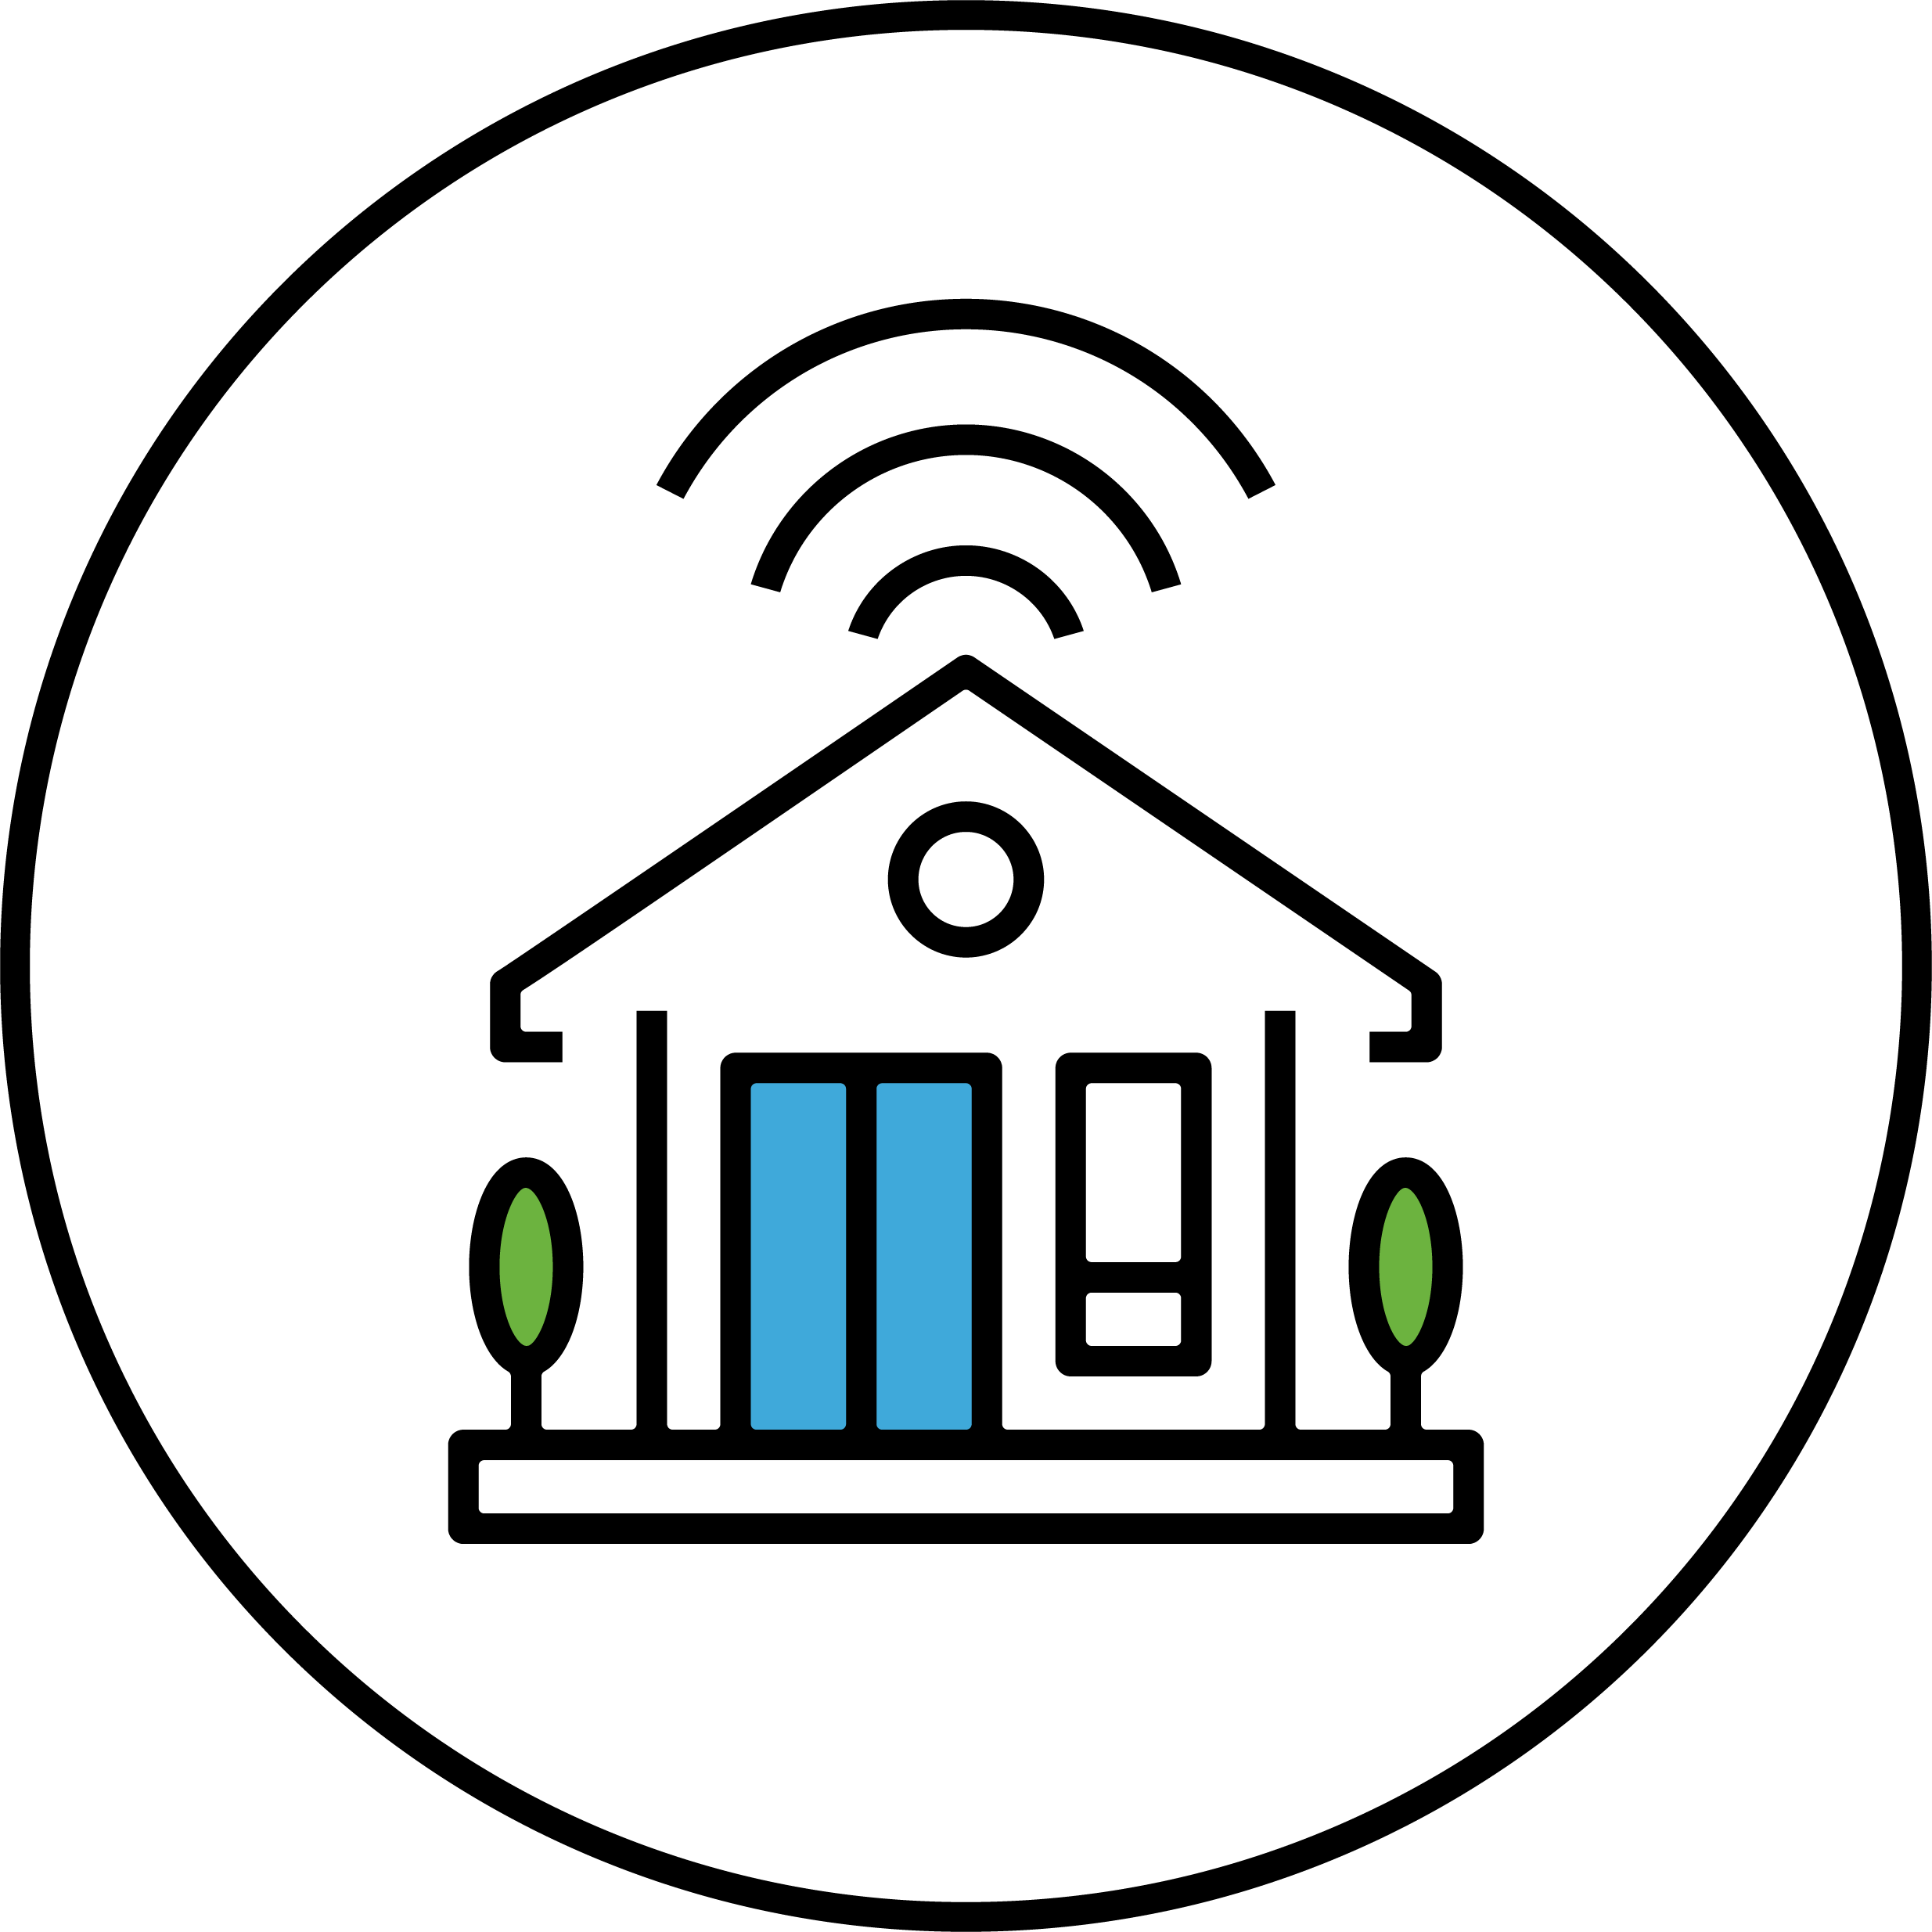 icon - internet of things